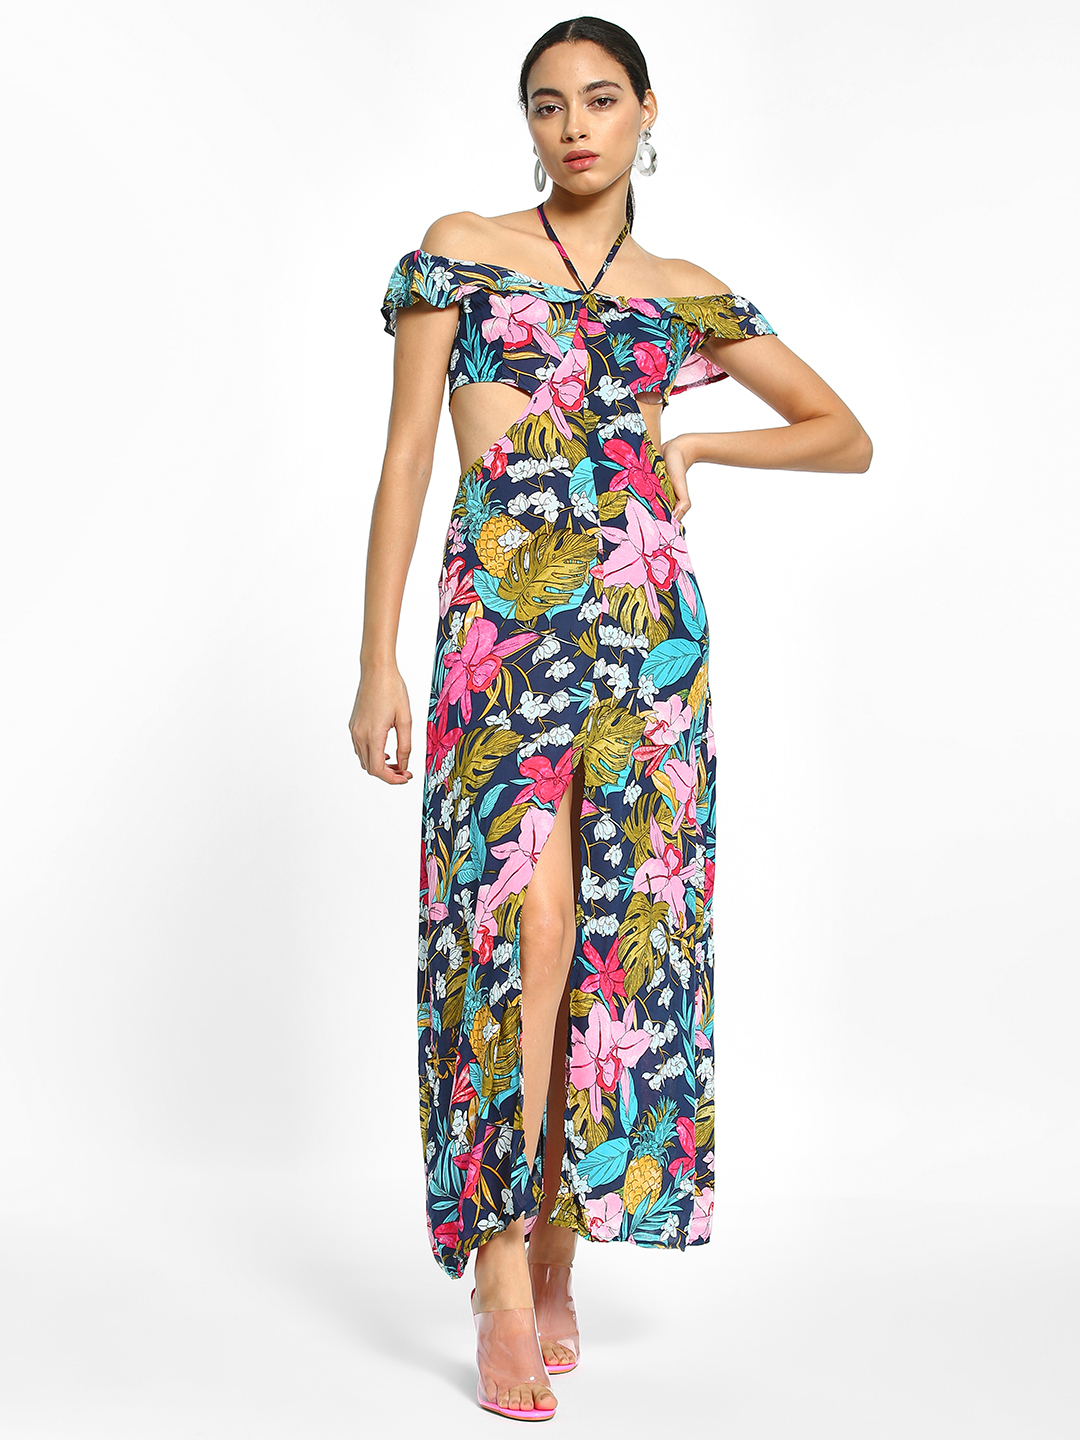 EmmaCloth Multi Floral Print Thigh-High Slit Maxi Dress 1